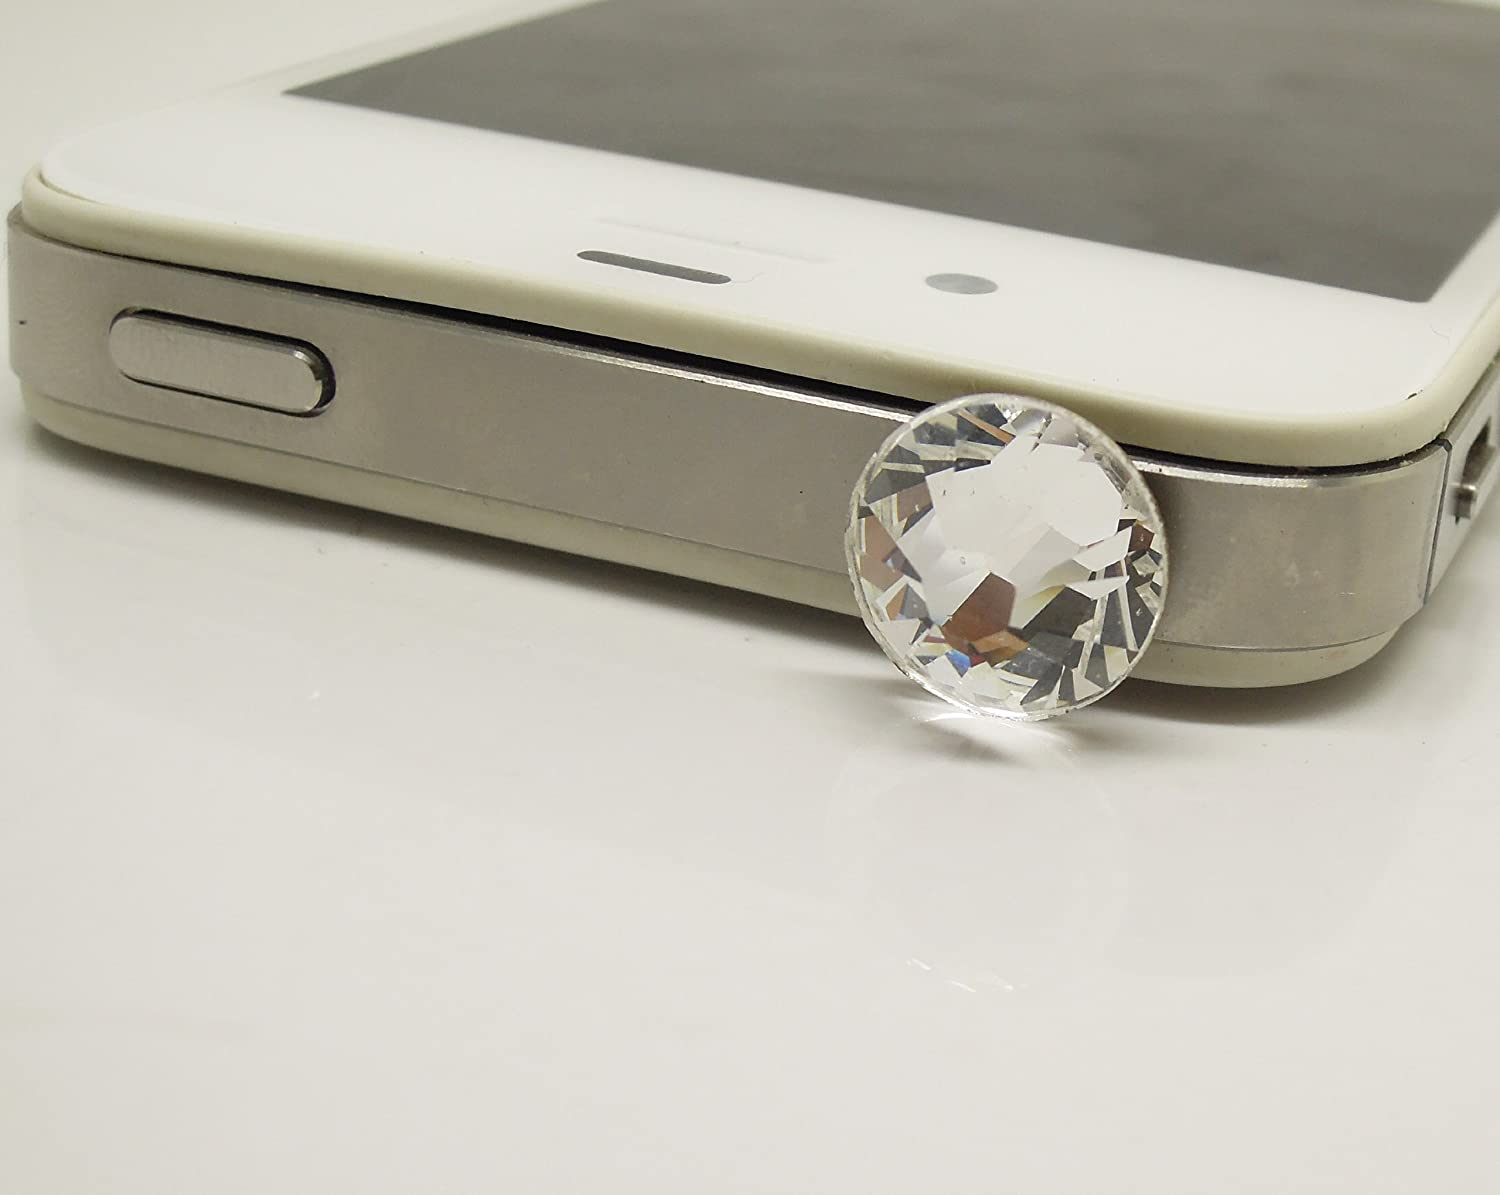 Discount is also underway Gift for Him or Her 1pc Ja Cell Earphone In a popularity Crystal Phone Swarovski